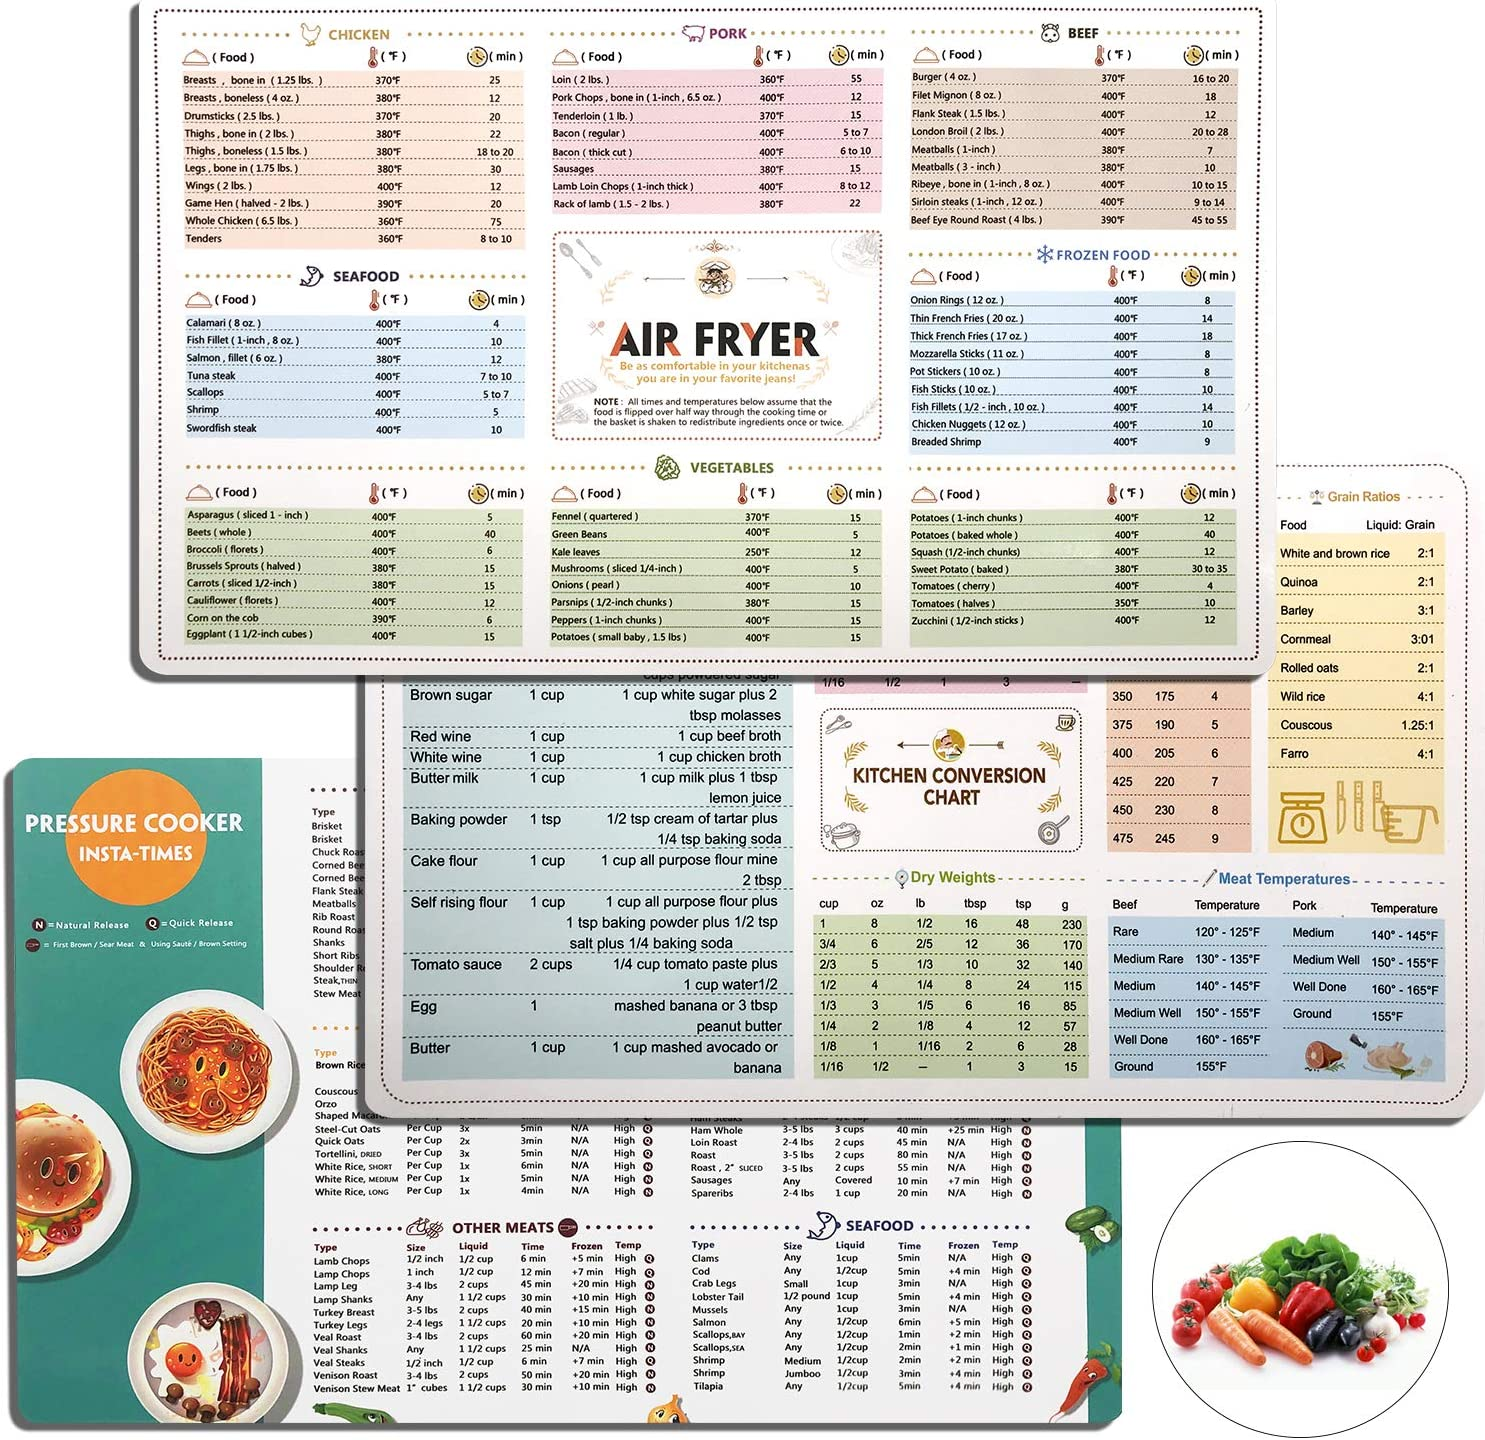 Air Fryer Cooking Times Quick Reference Guide,Instant Pot Cook Times Cookbook Cooker Accessories,Cheat Sheet Magnets Set-Clear and Easy Cooking Time(3 Pack)